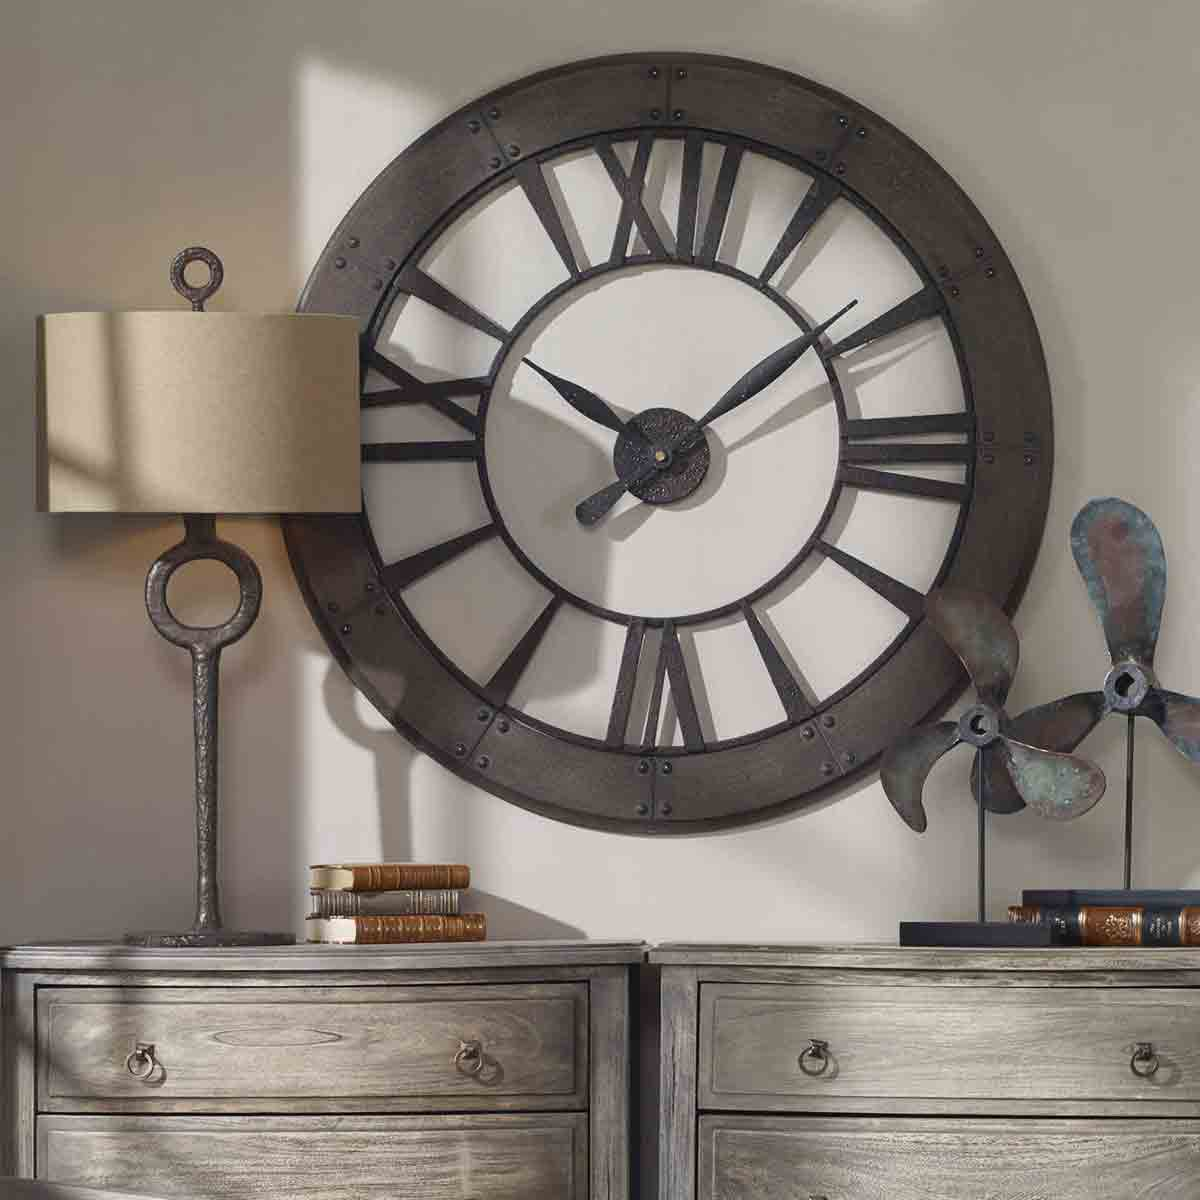 West Bend Wall Clock